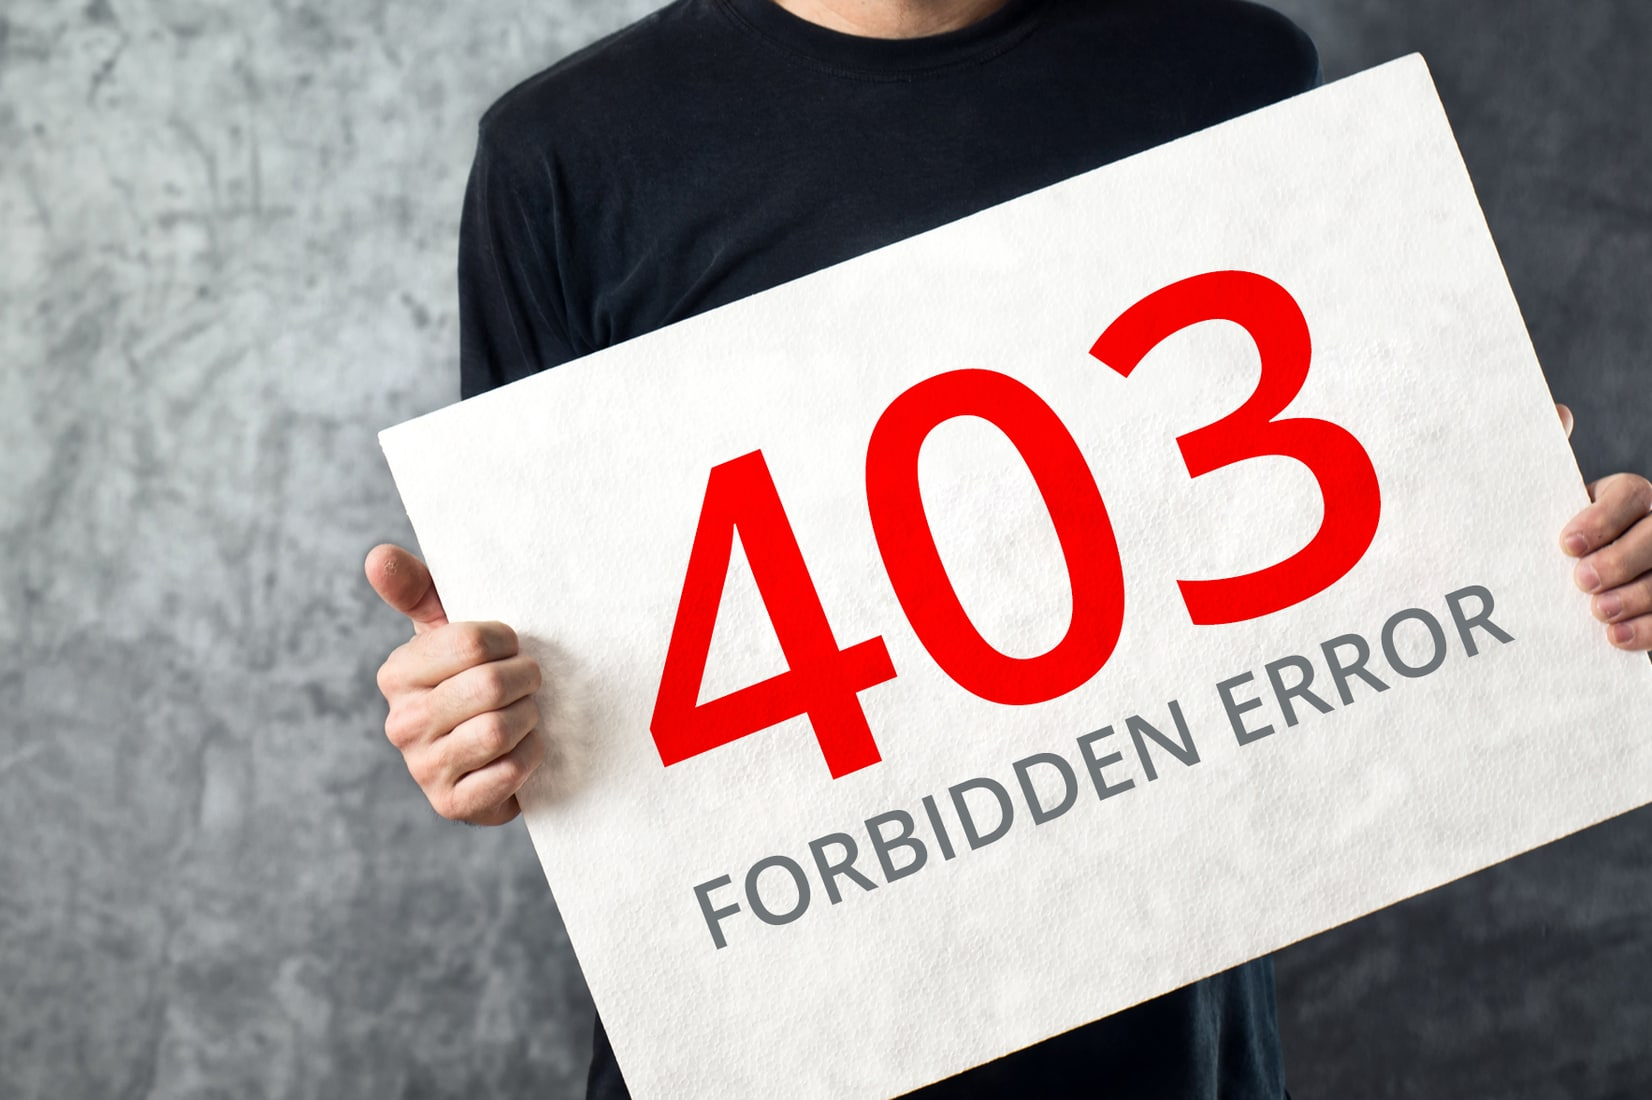 403 forbidden error in wordpress